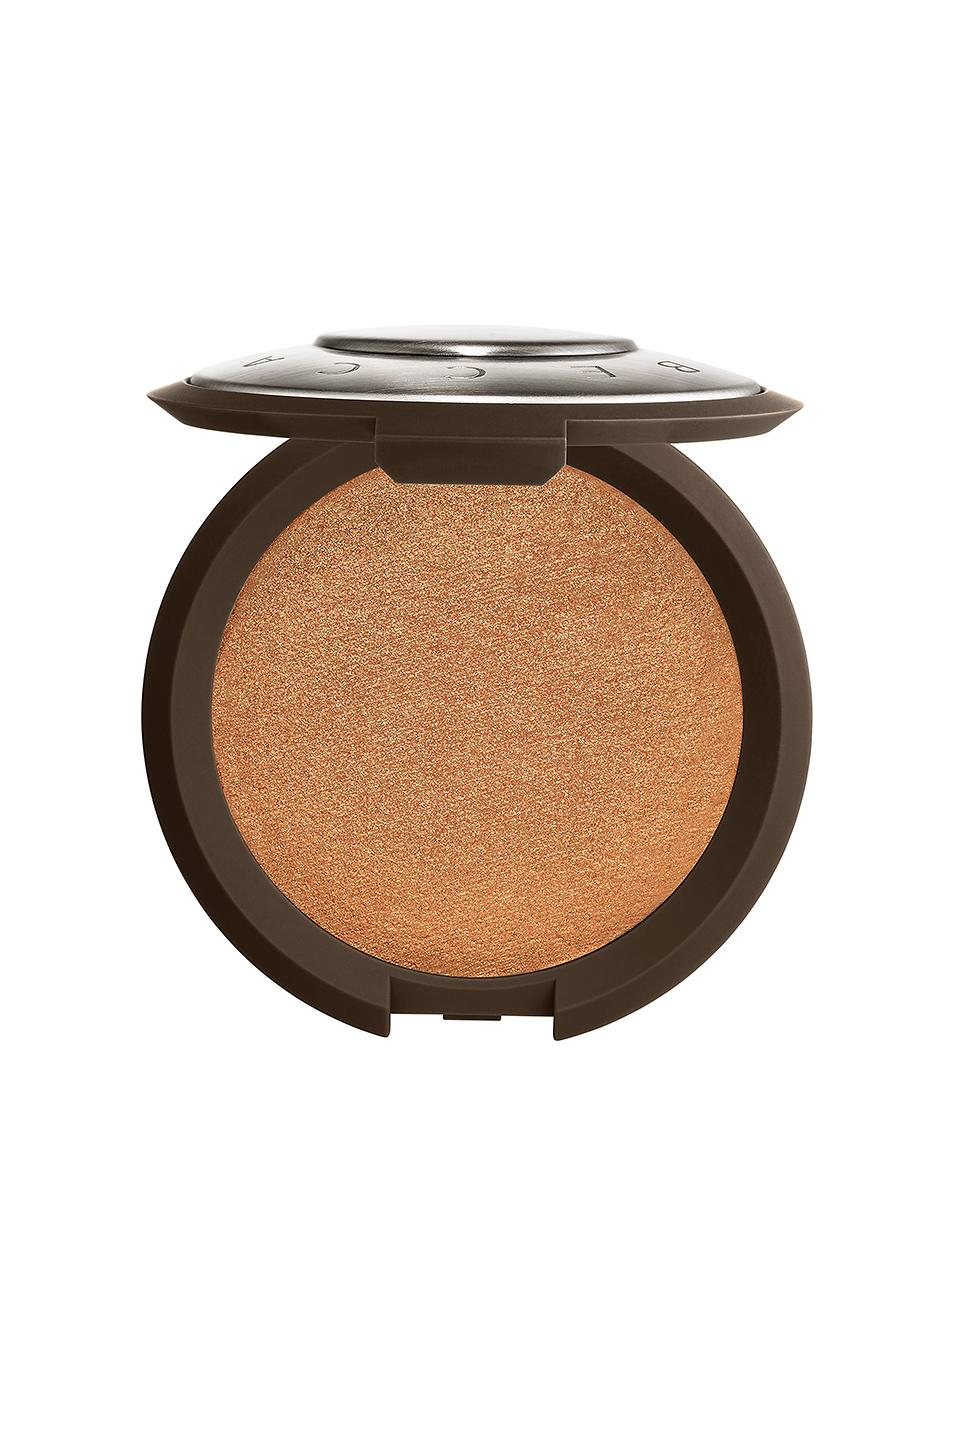 Becca Cosmetics Shimmering Skin Perfector Pressed Highlighter In Chocolate Geode